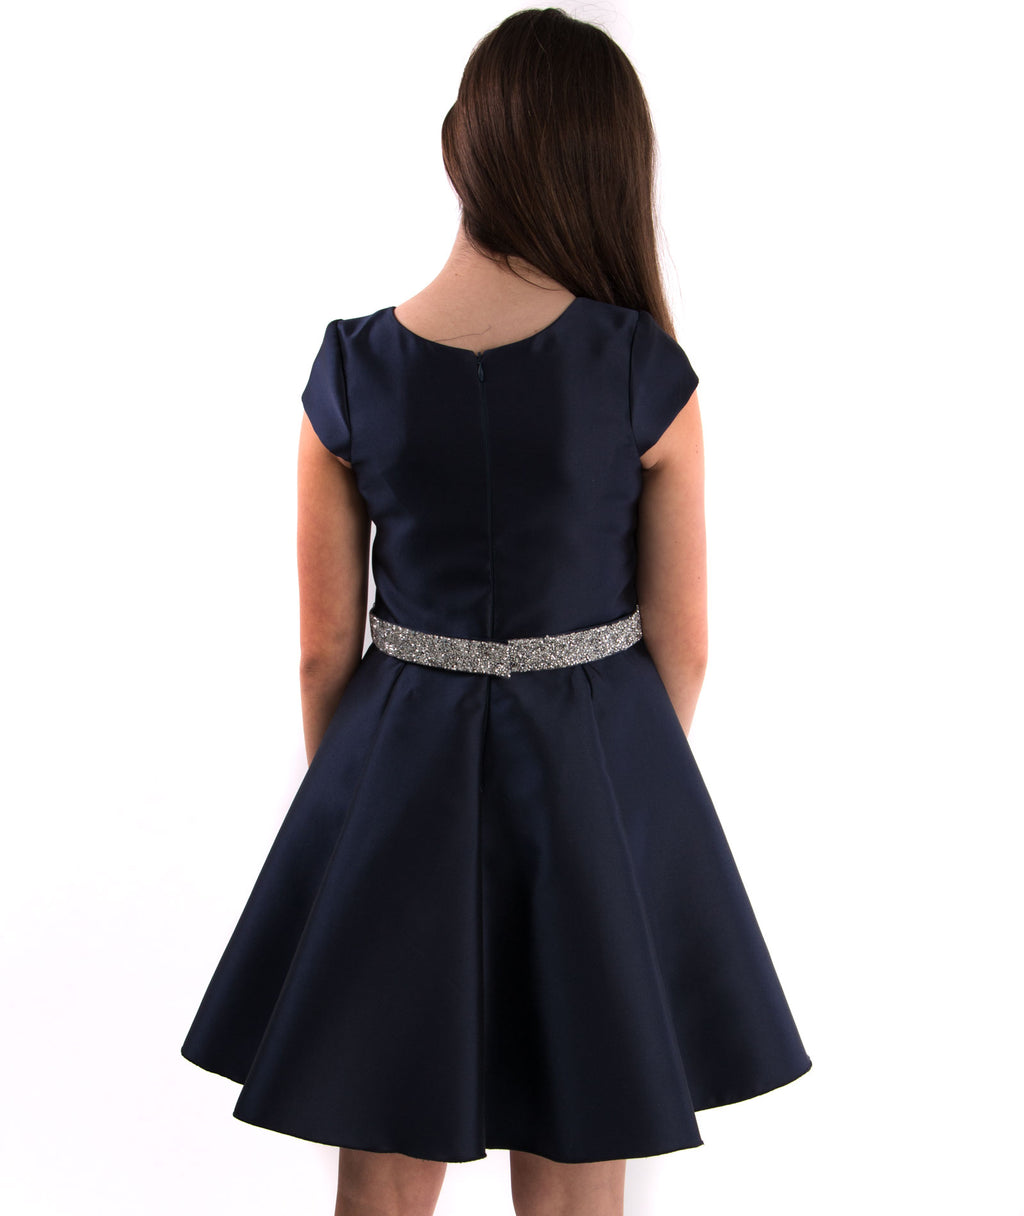 Zoe Ltd. Girls Kate Dress - Frankie's on the Park